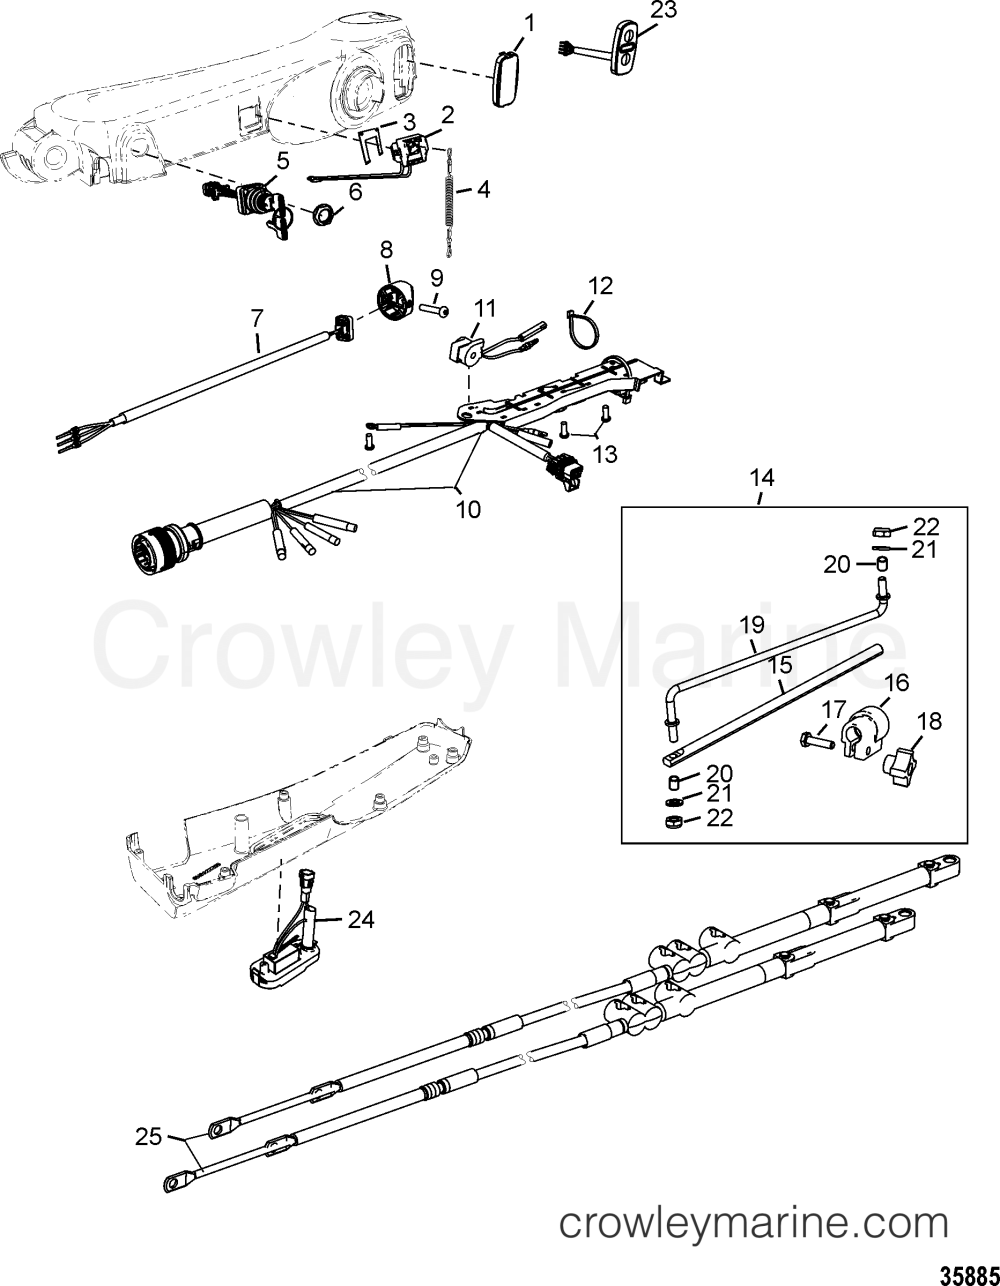 medium resolution of various years rigging parts steering systems and components 1994 1994 up tiller handle